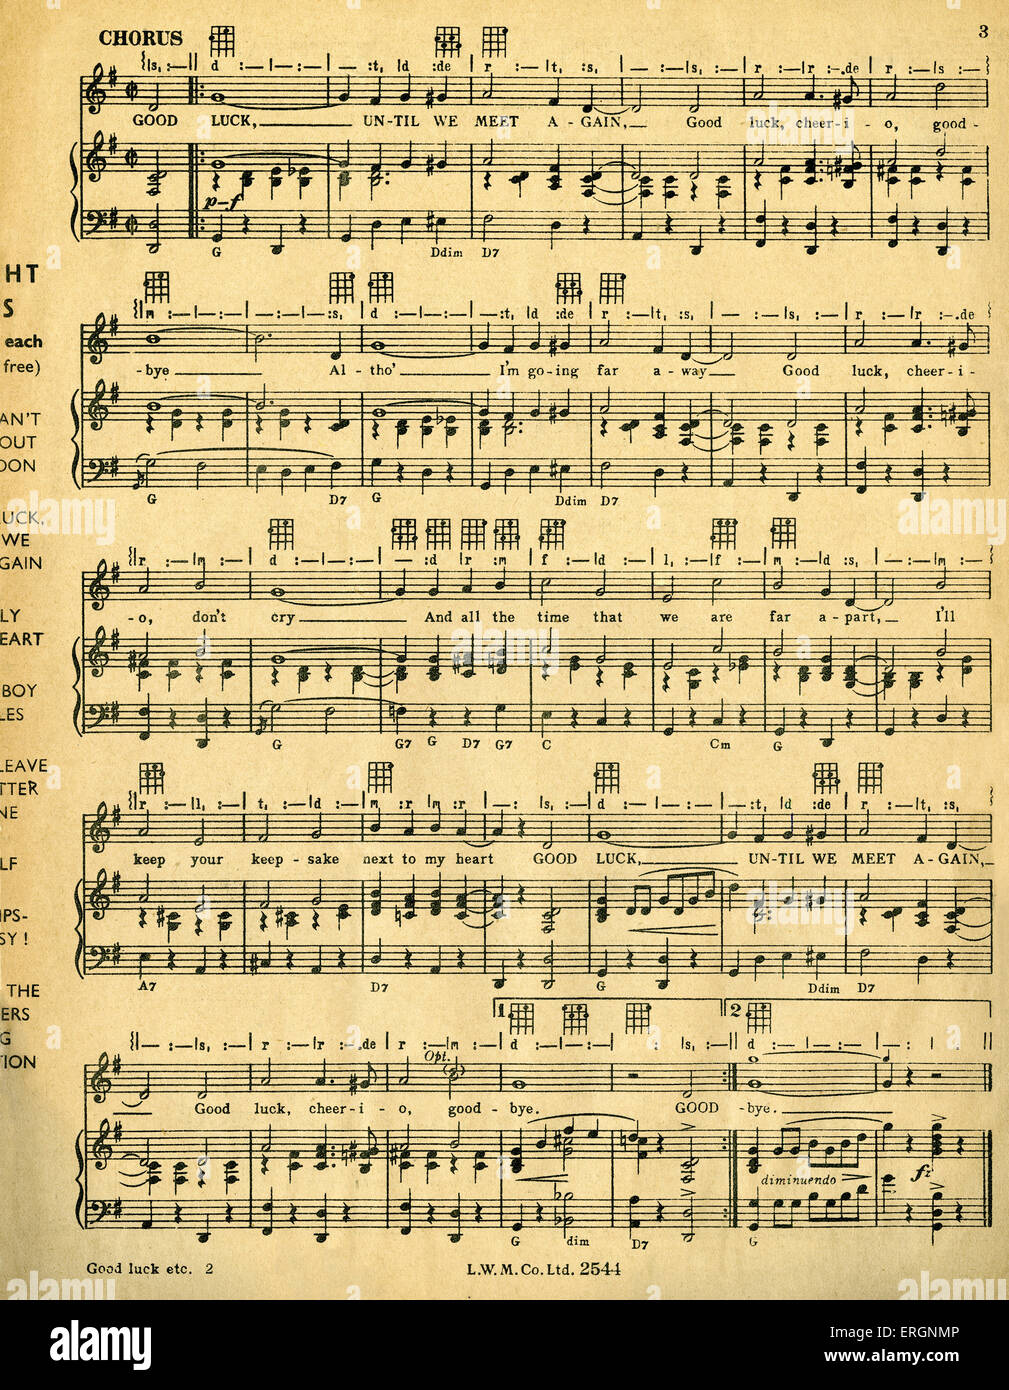 Good Luck Until We Meet Again, - score  -  song written and composed by Horatio Nicholls, recorded and broadcast - Stock Image